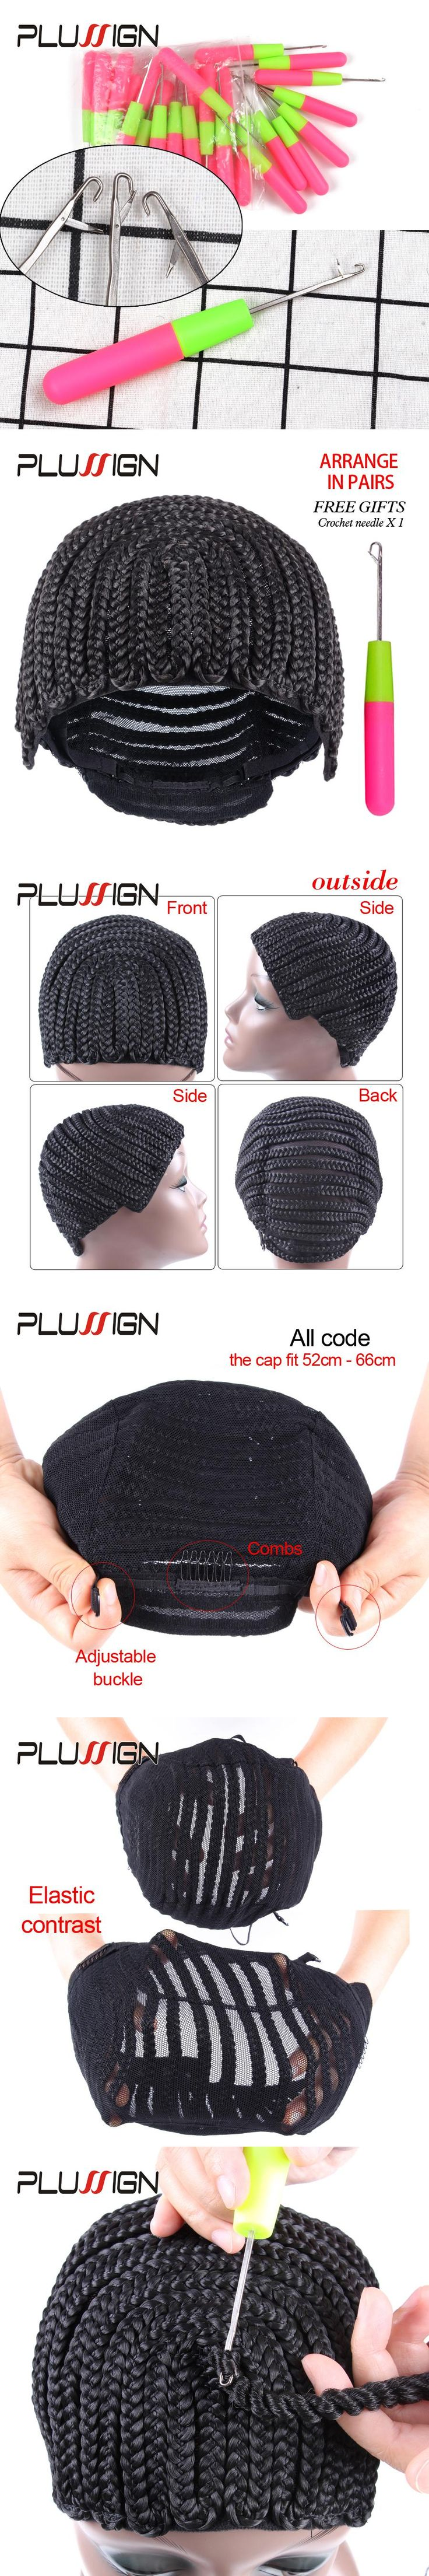 Plussign Cornrow Braid Cap with Hook Needle for Weaving Crochet Braids Dreadlocks Adjustable Cornrows Wig Cap for Making Wigs